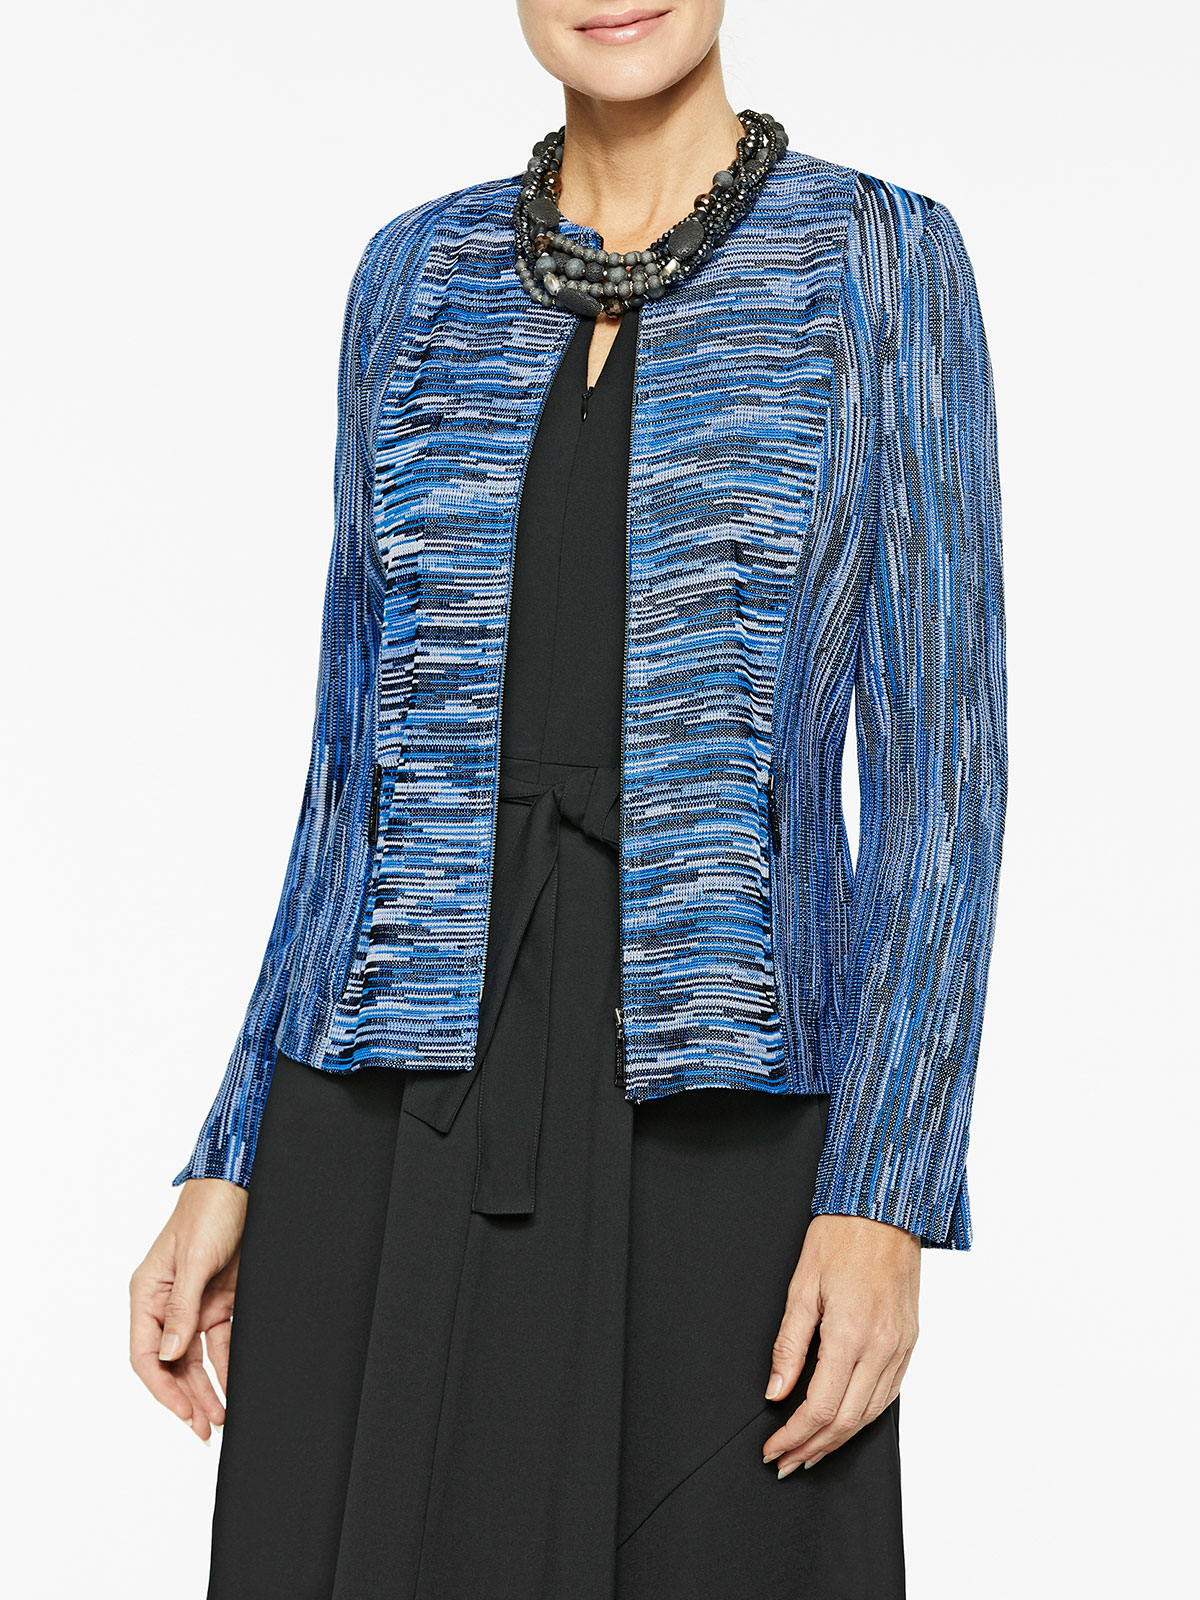 Zip-Up Melange Knit Jacket Color Harbor Blue/Black/White